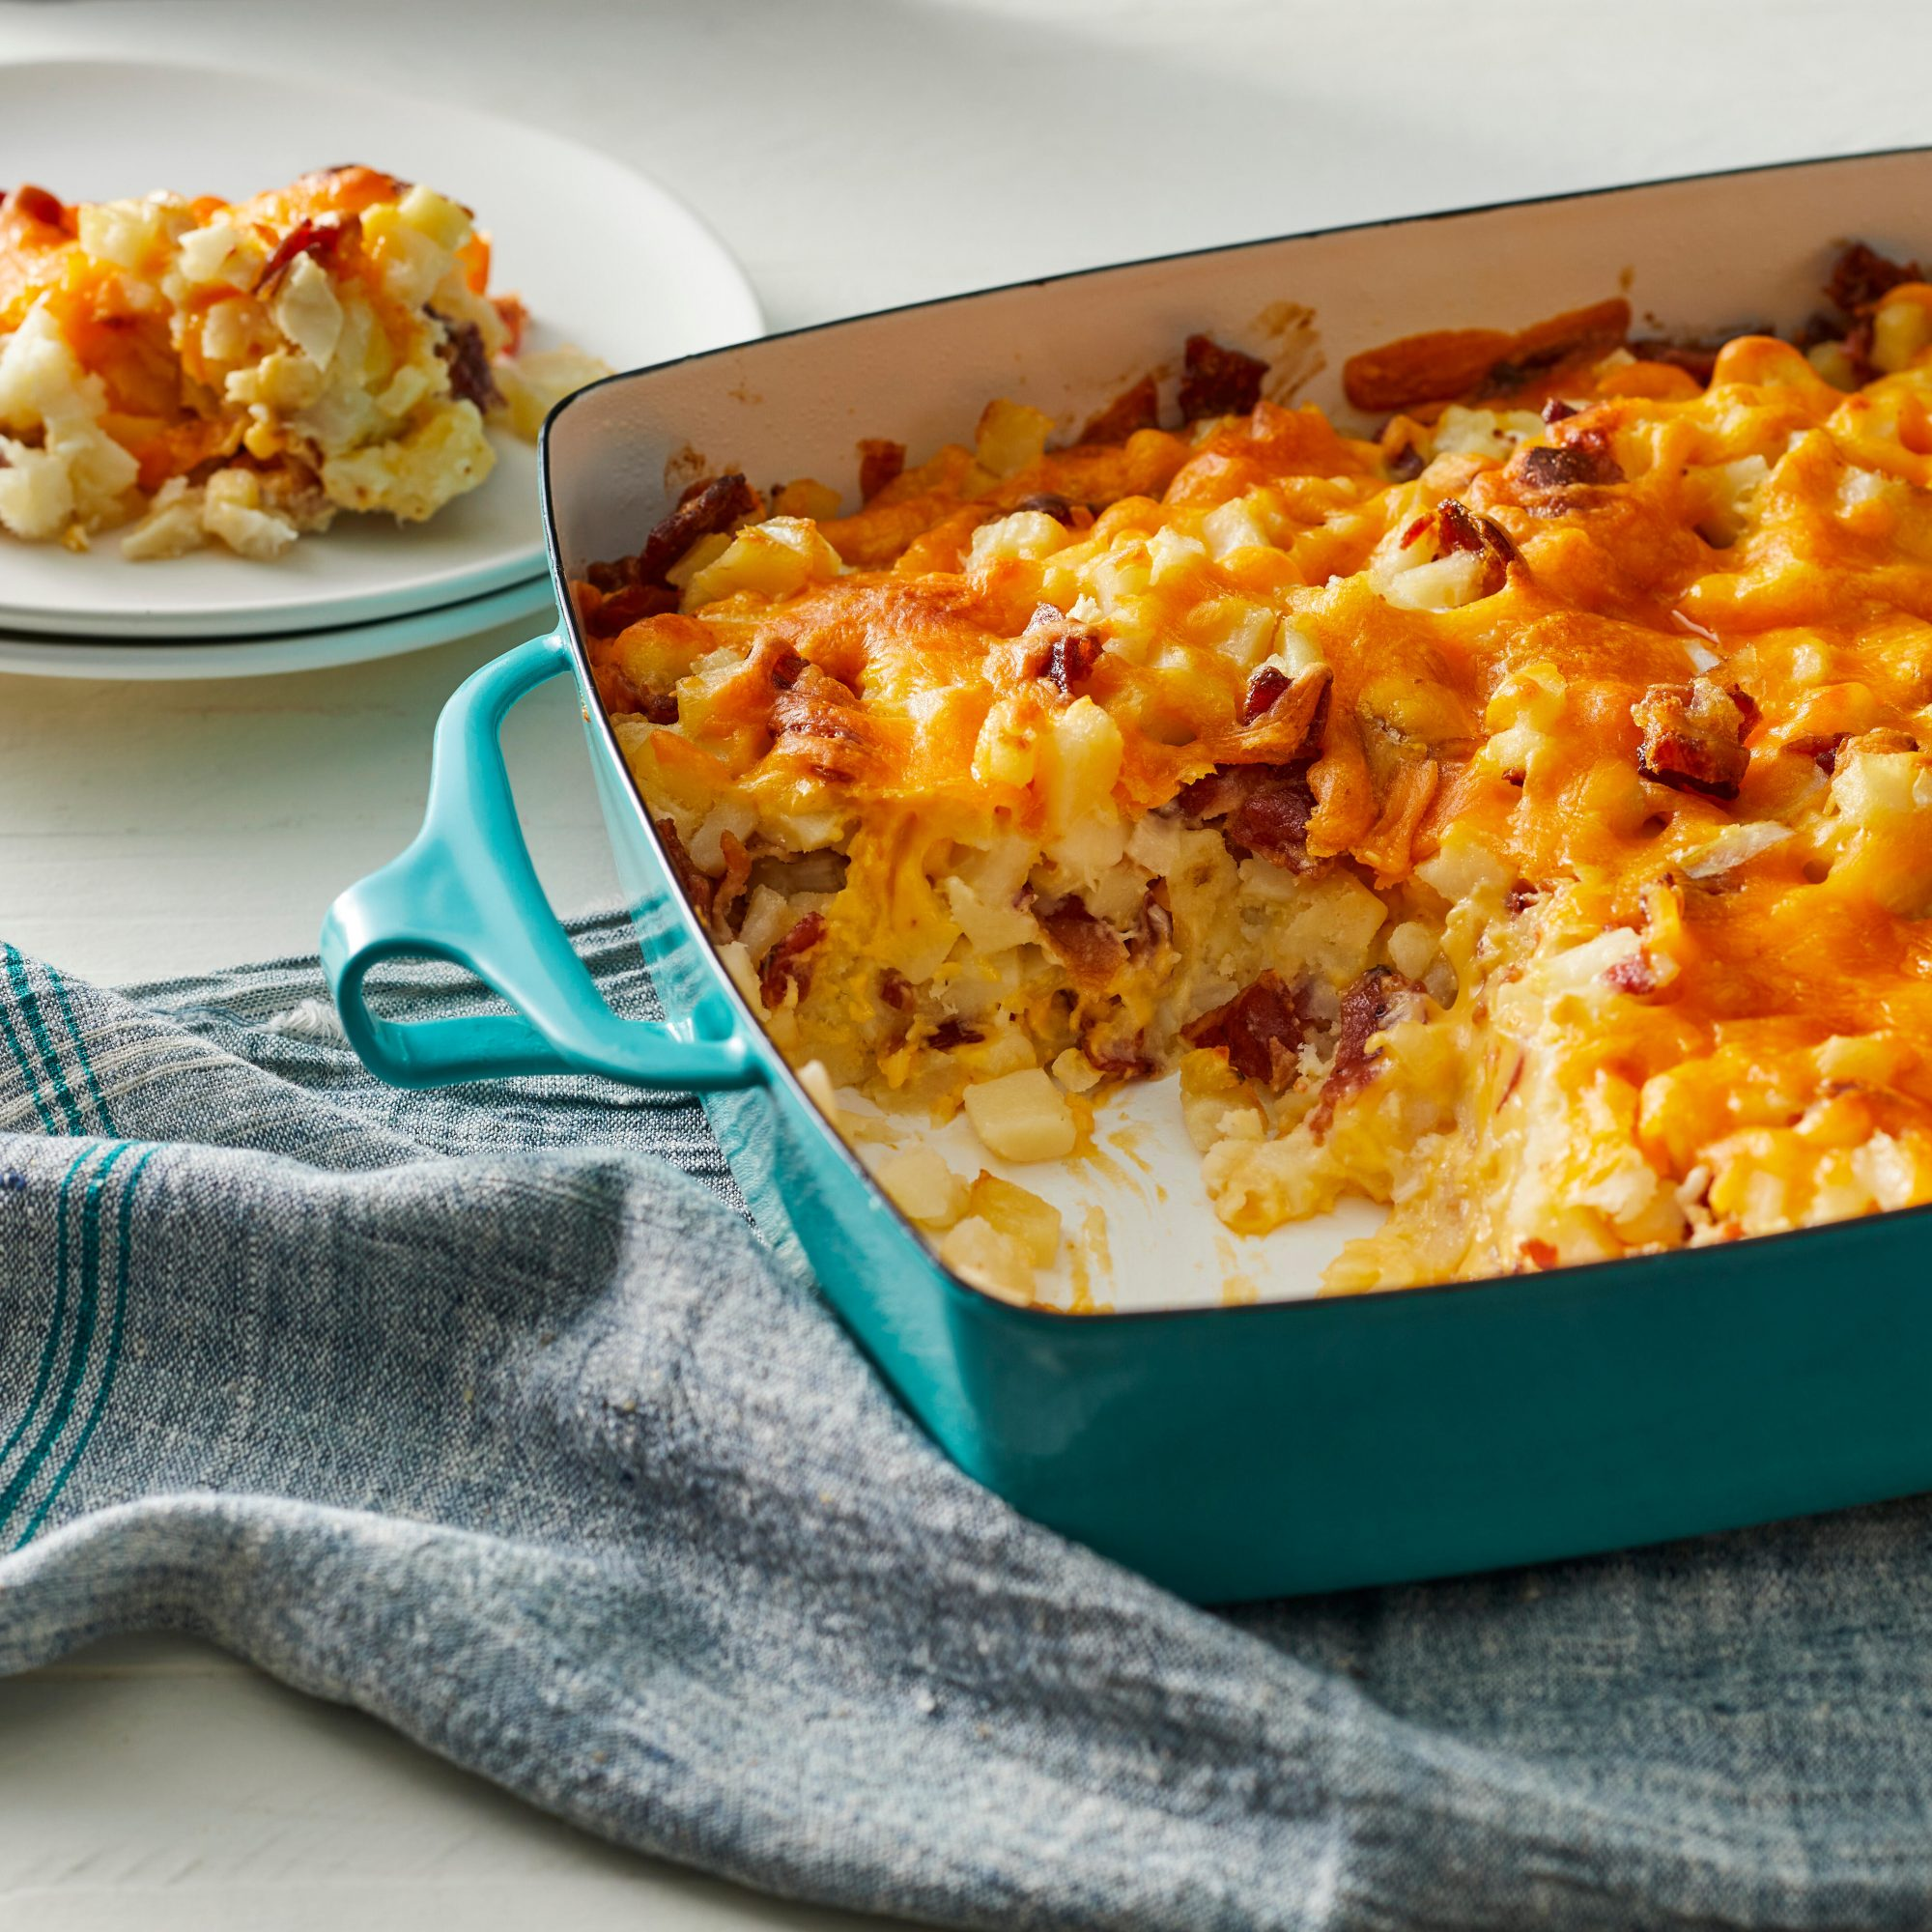 Brunch potato casserole in a teal casserole dish with a serving scooped out